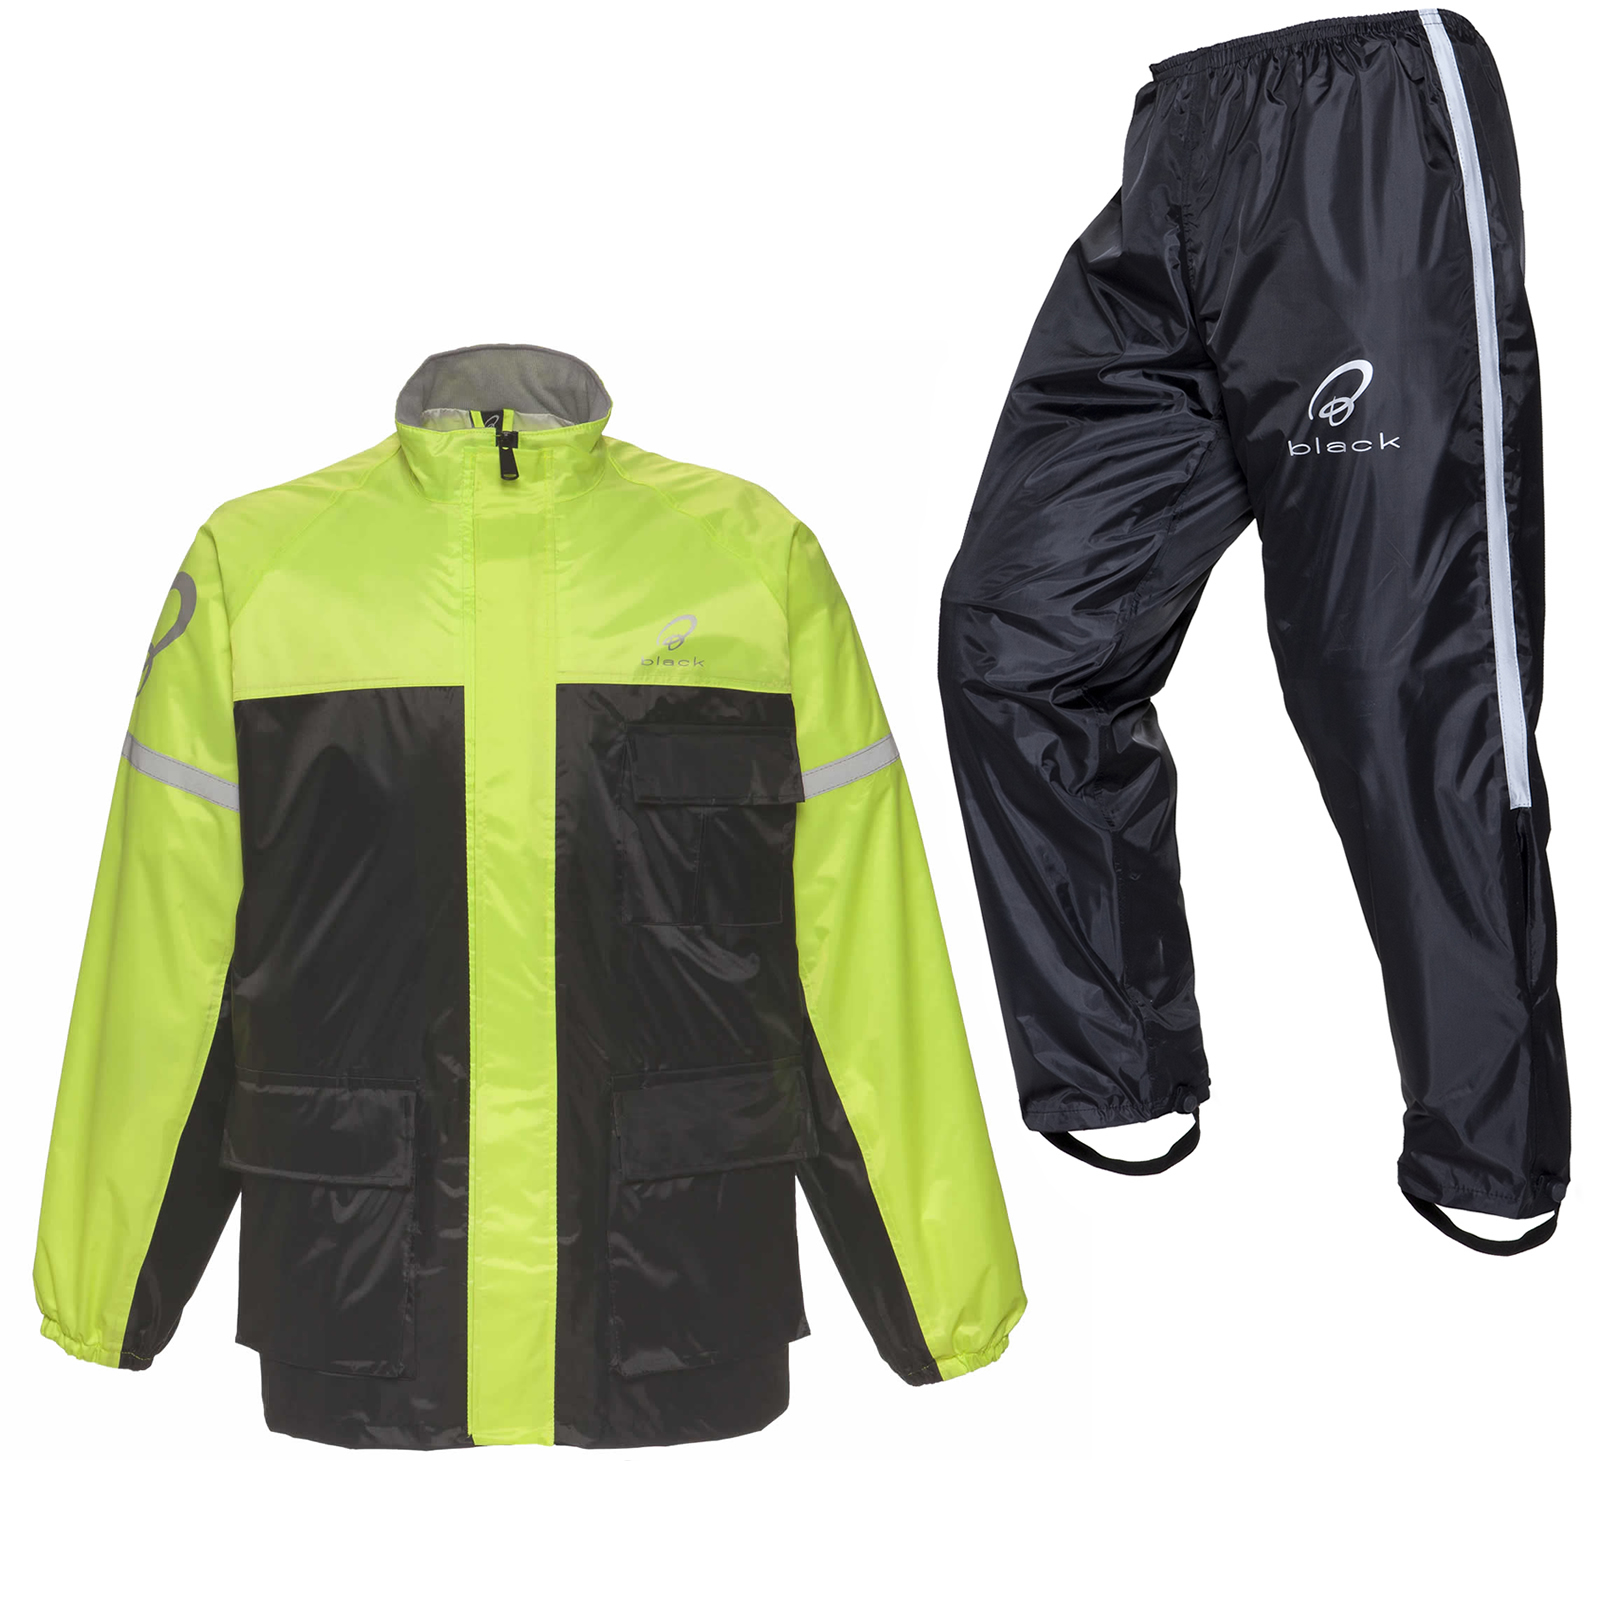 Black//Hi-Vis Waterproof Elasticated Motorcycle Rain Over Jacket All Sizes